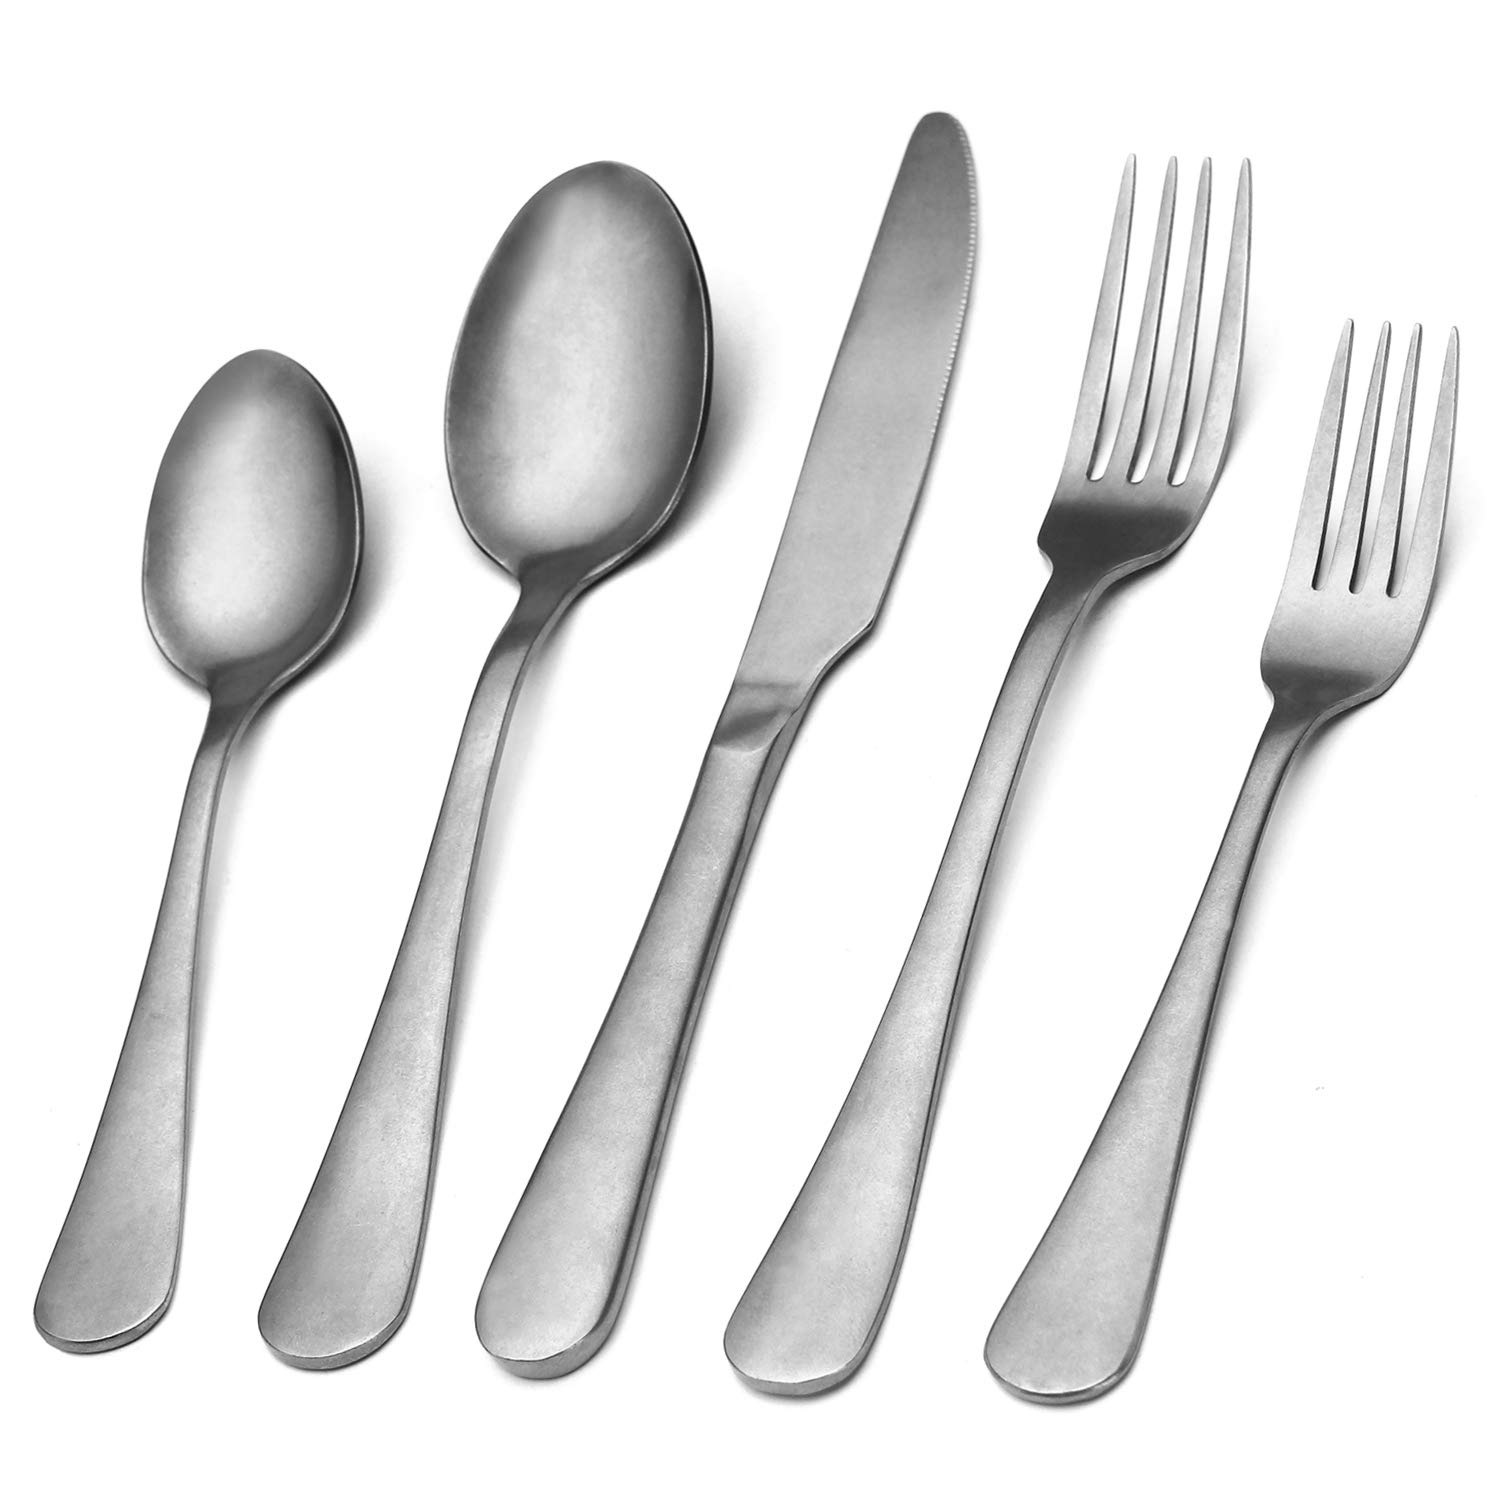 Vintage Silverware Set,20-Piece Stainless Steel Silver Grey Flatware Set With Round Edge,Kitchen Utensil Set Service for 4, Tableware Cutlery Set for Home and Restaurant, Dishwasher Safe